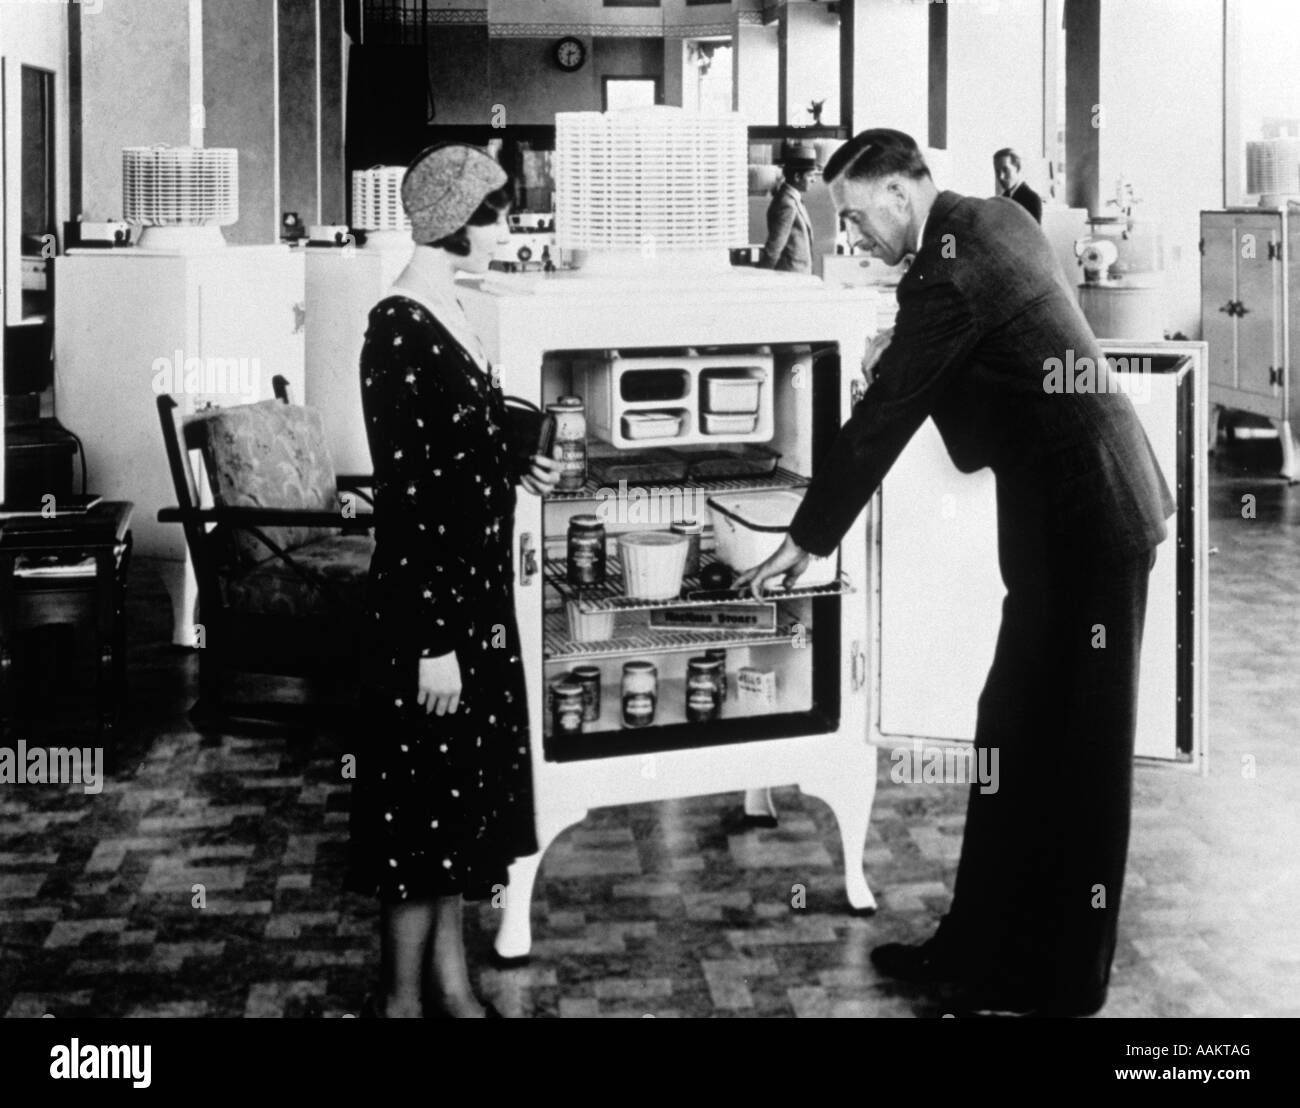 1920s 1930s SALESMAN DEMONSTRATING ELECTRIC REFRIGERATOR TO WOMAN SHOPPER - Stock Image